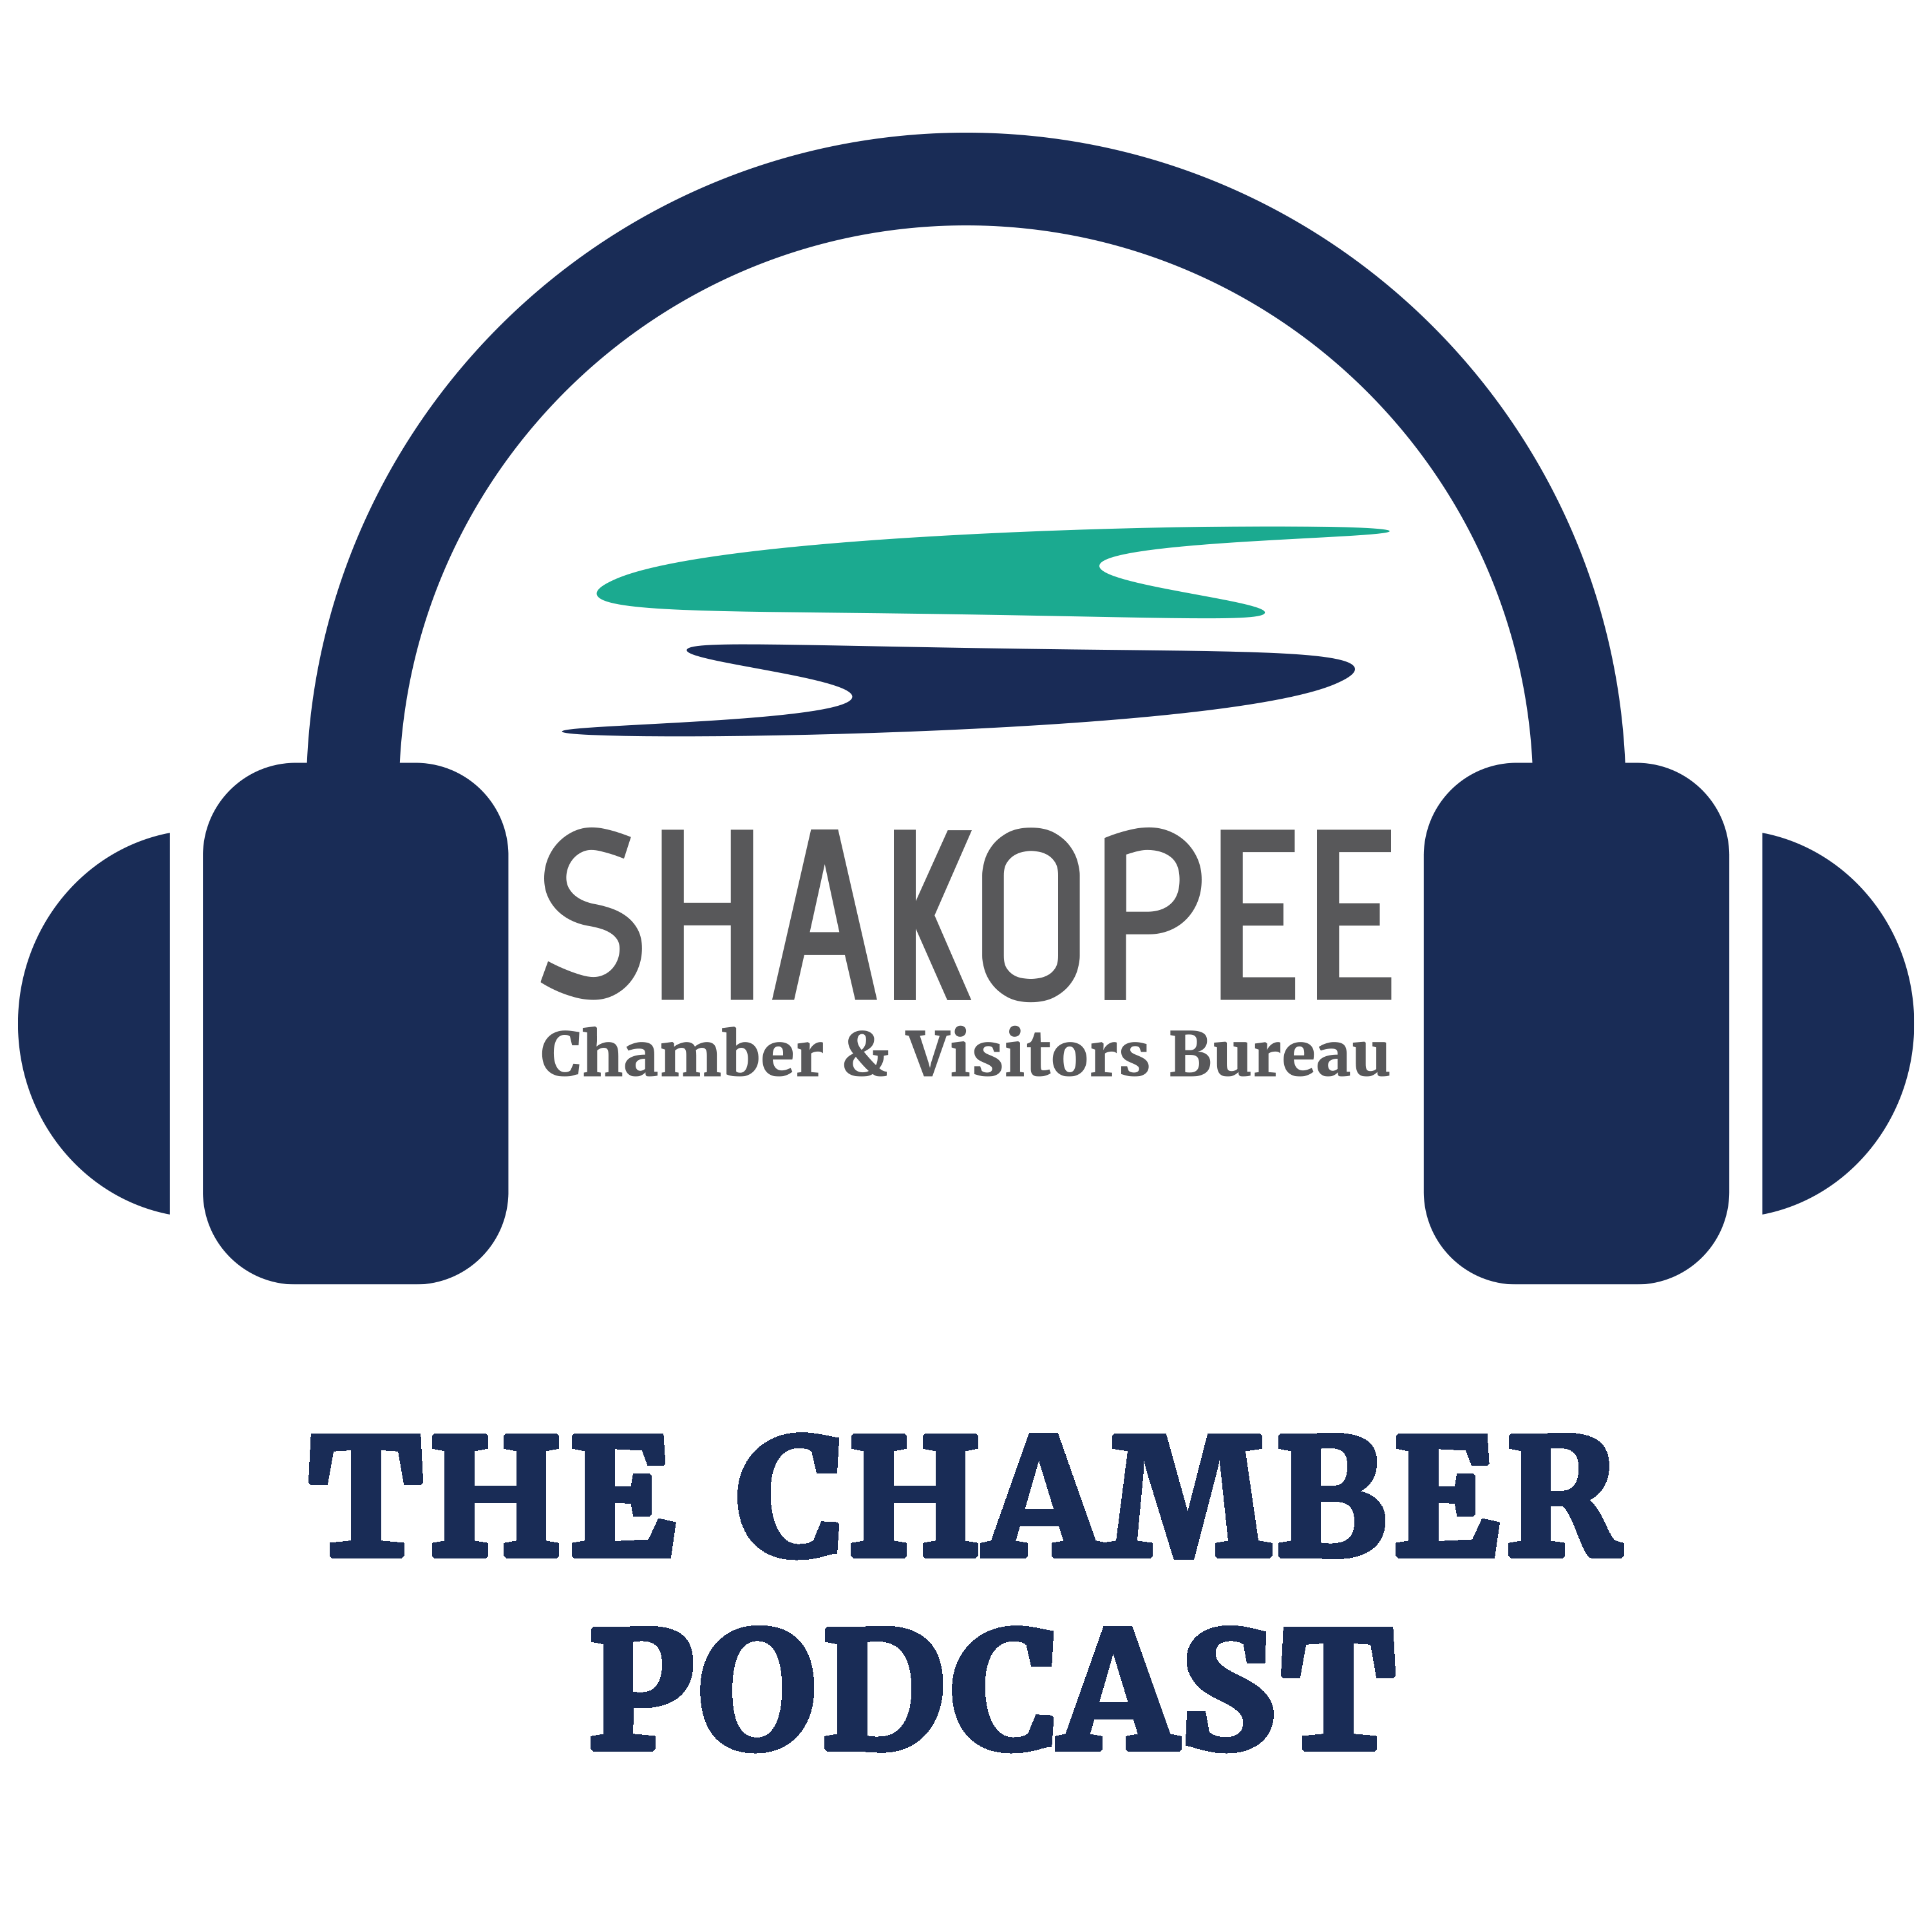 The Shakopee Chamber Podcast Episode #10